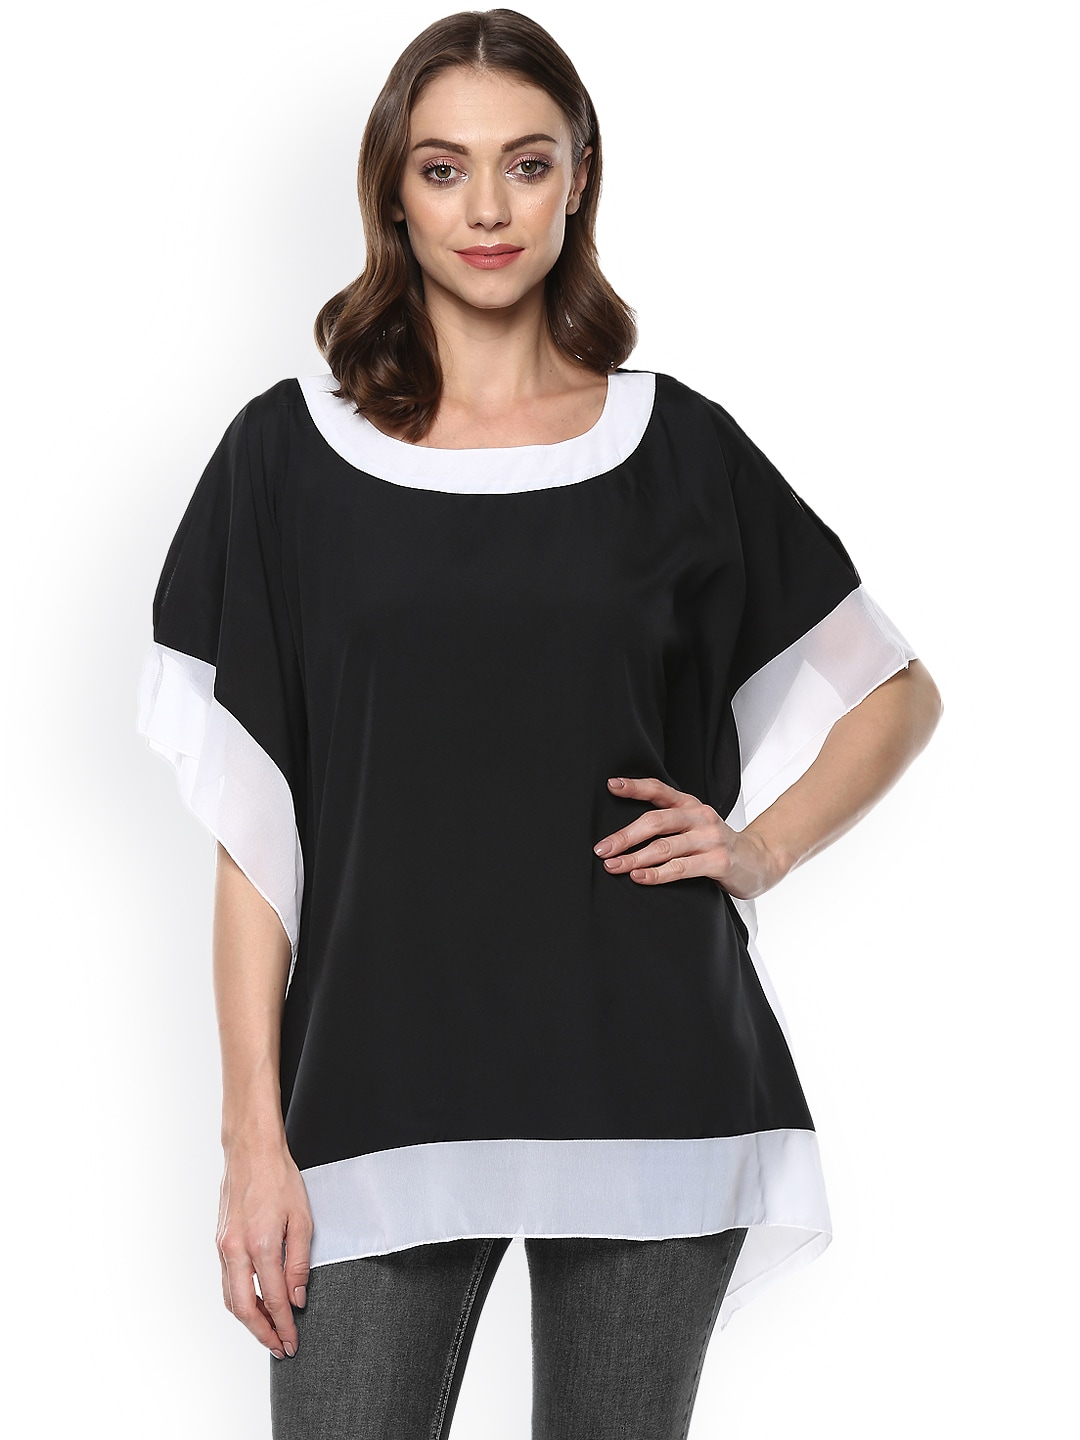 ad15c48565a Ladies Tops - Buy Tops   T-shirts for Women Online